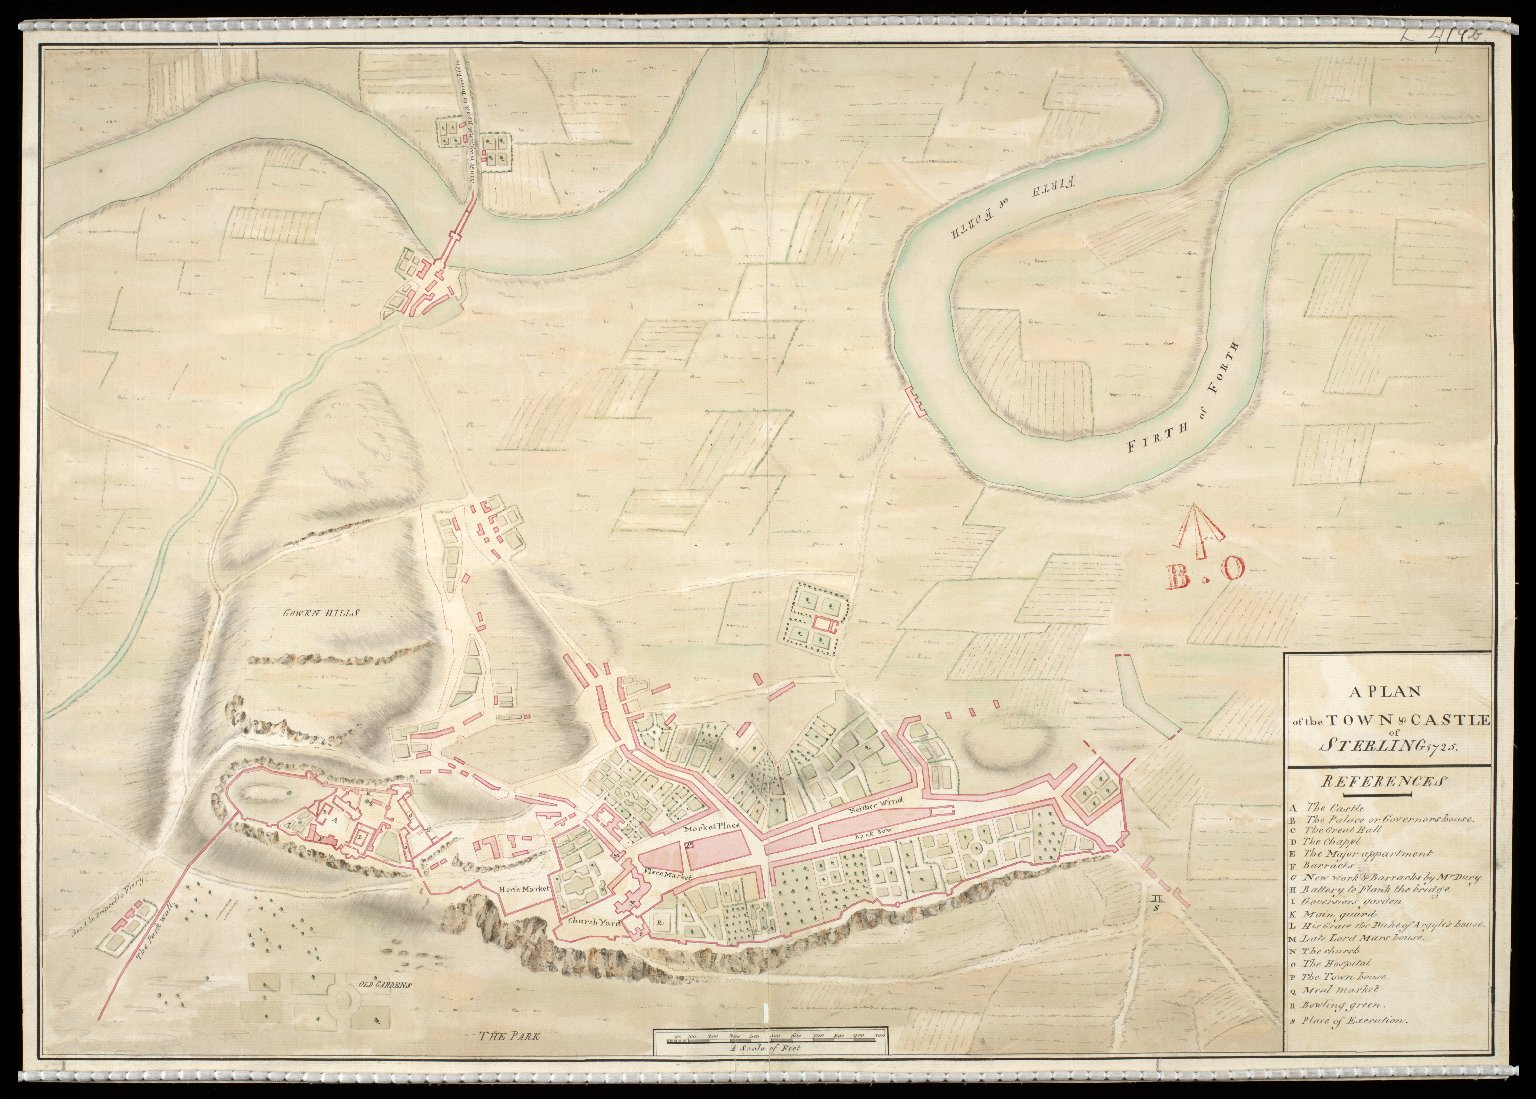 A Plan of the town and castle of Sterling [i.e. Stirling] 1725. [1 of 1]